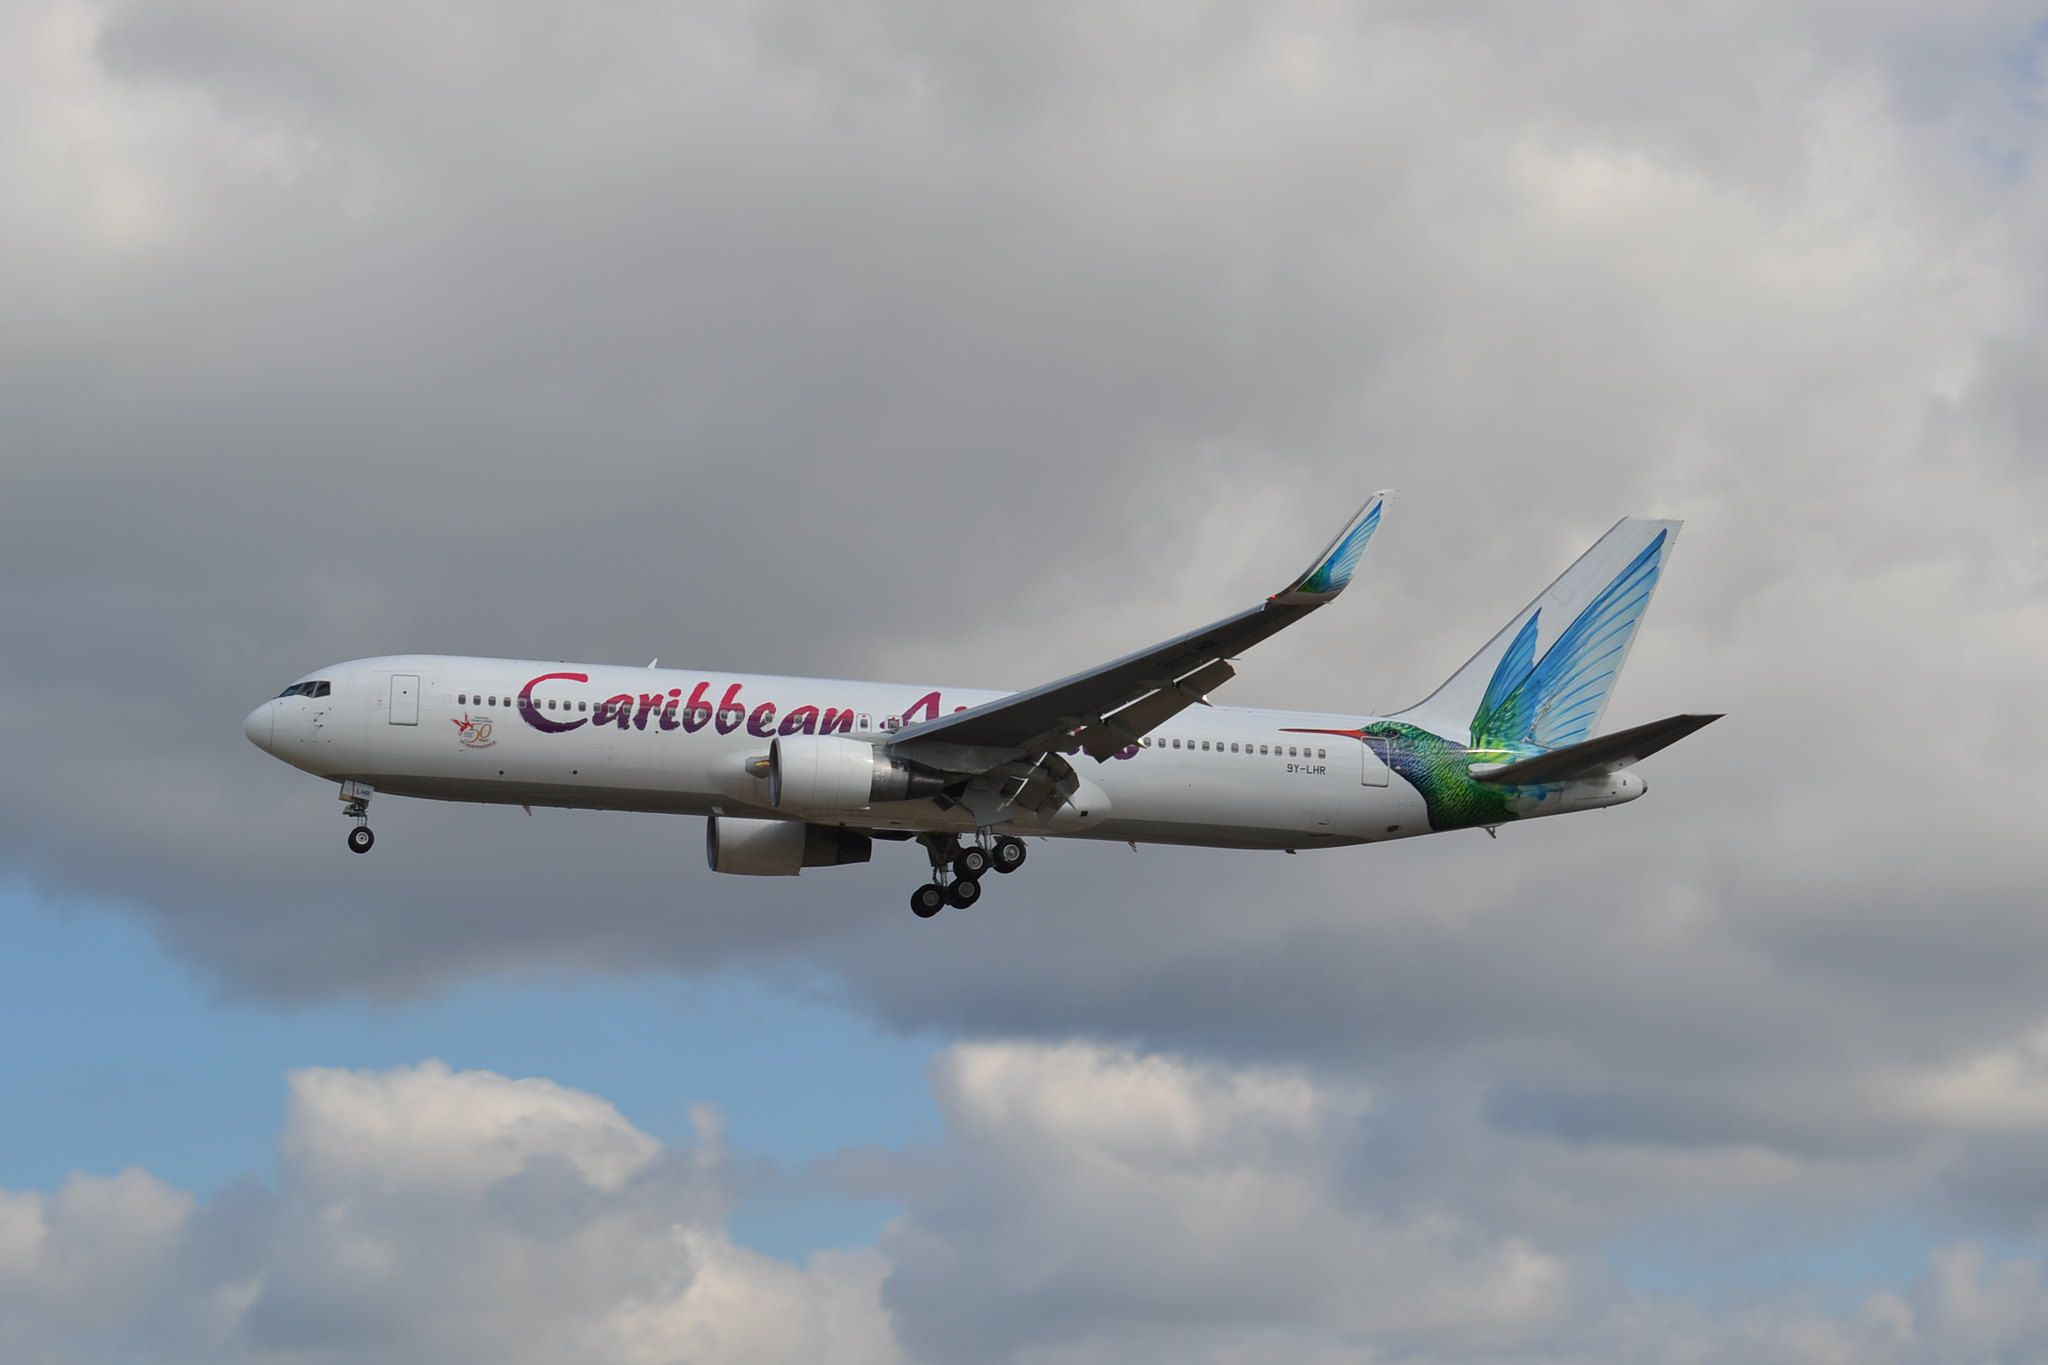 Boeing 767 of Caribbean Airlines at London Gatwick